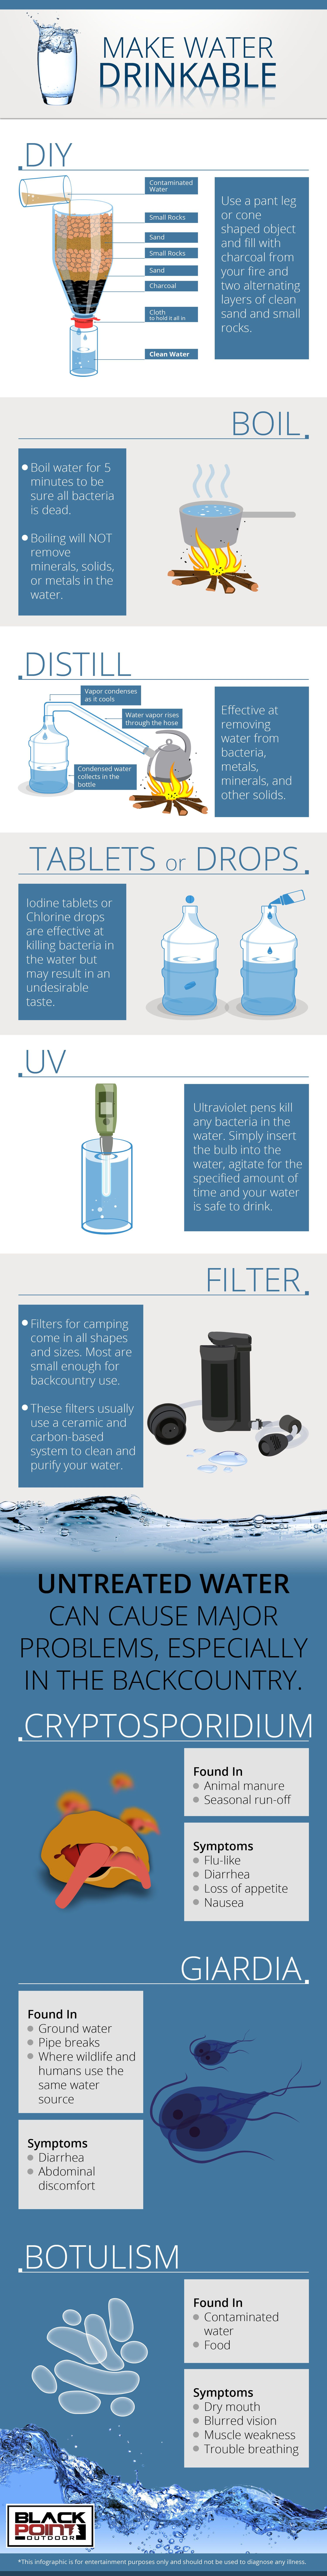 Make your water safe to drink, even while camping with this ...